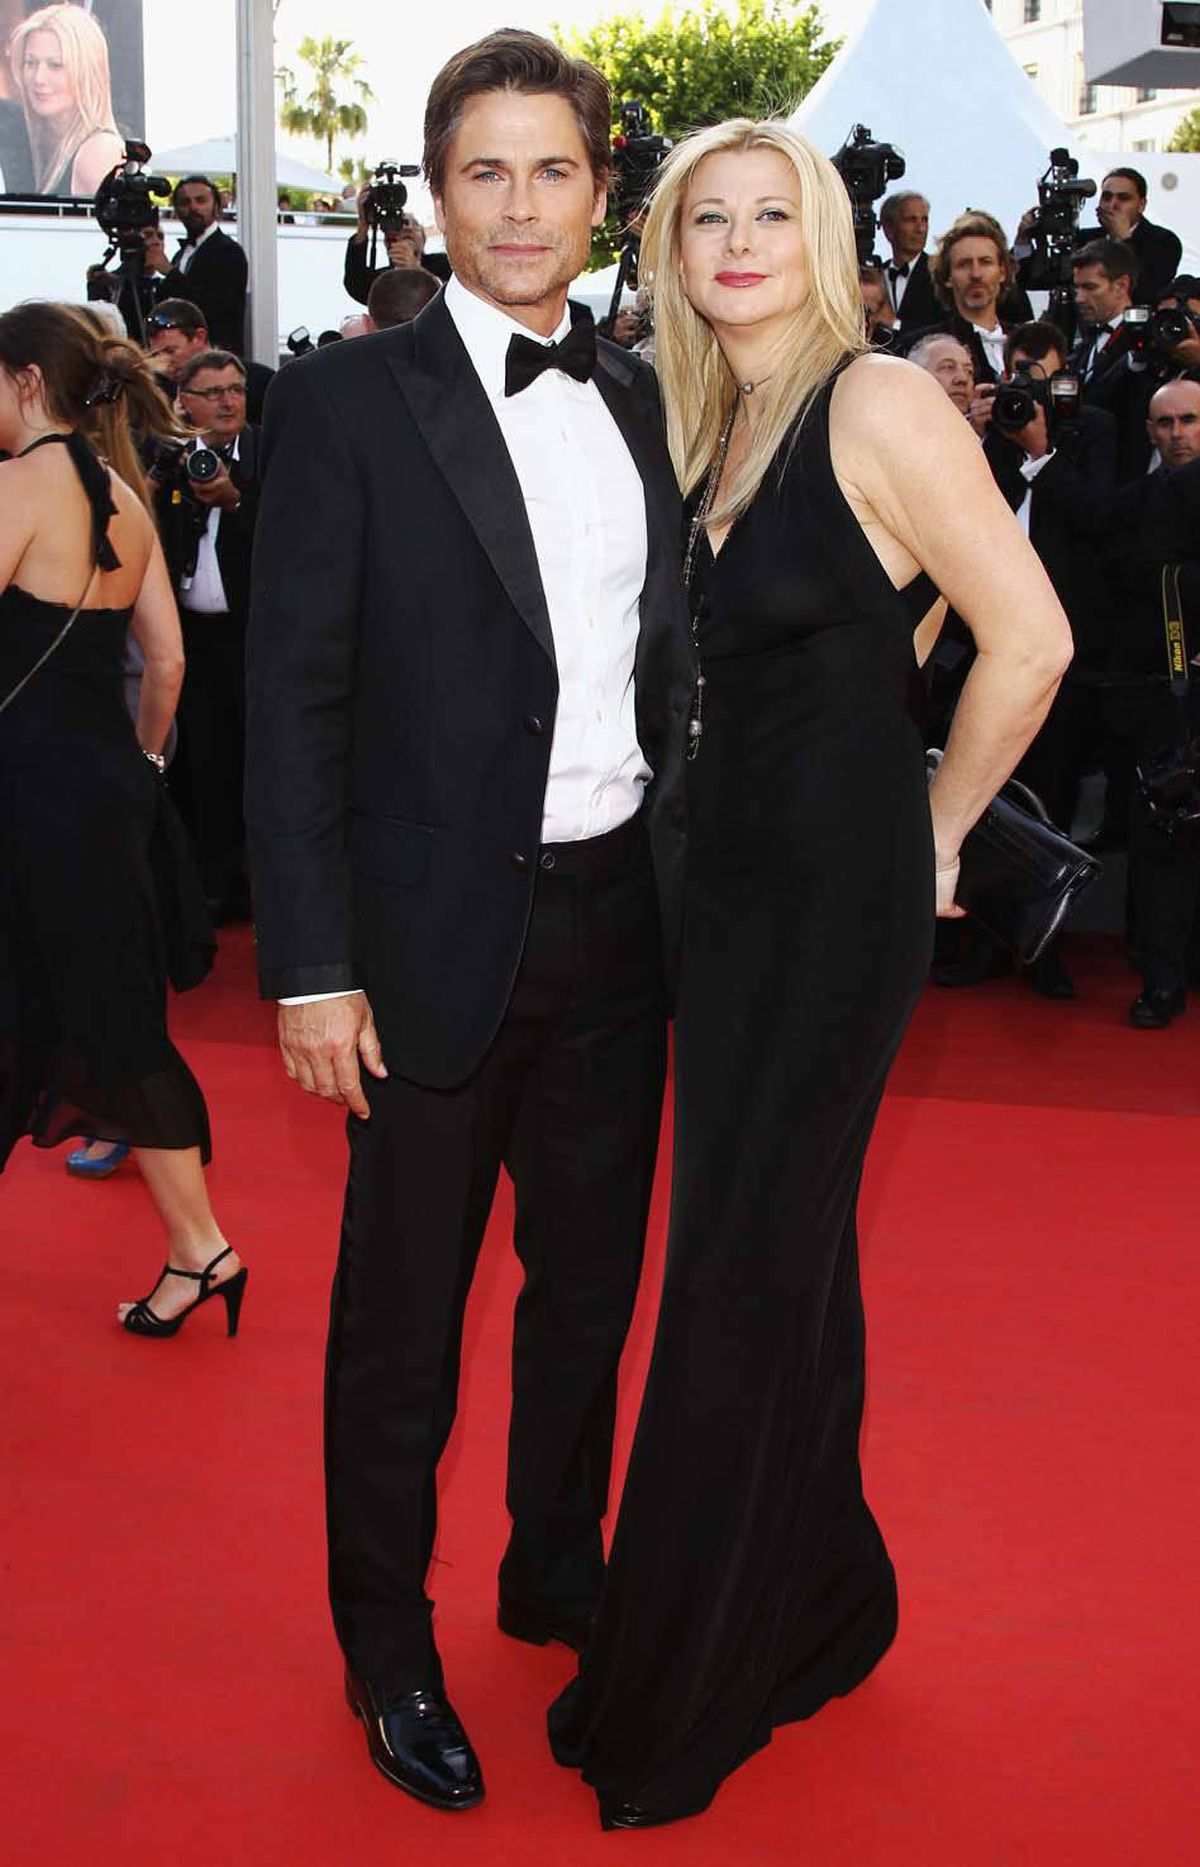 """Rob Lowe and wife Sheryl Berkoff attend the """"The Tree Of Life"""" premiere at the Cannes Film Festival on Monday."""